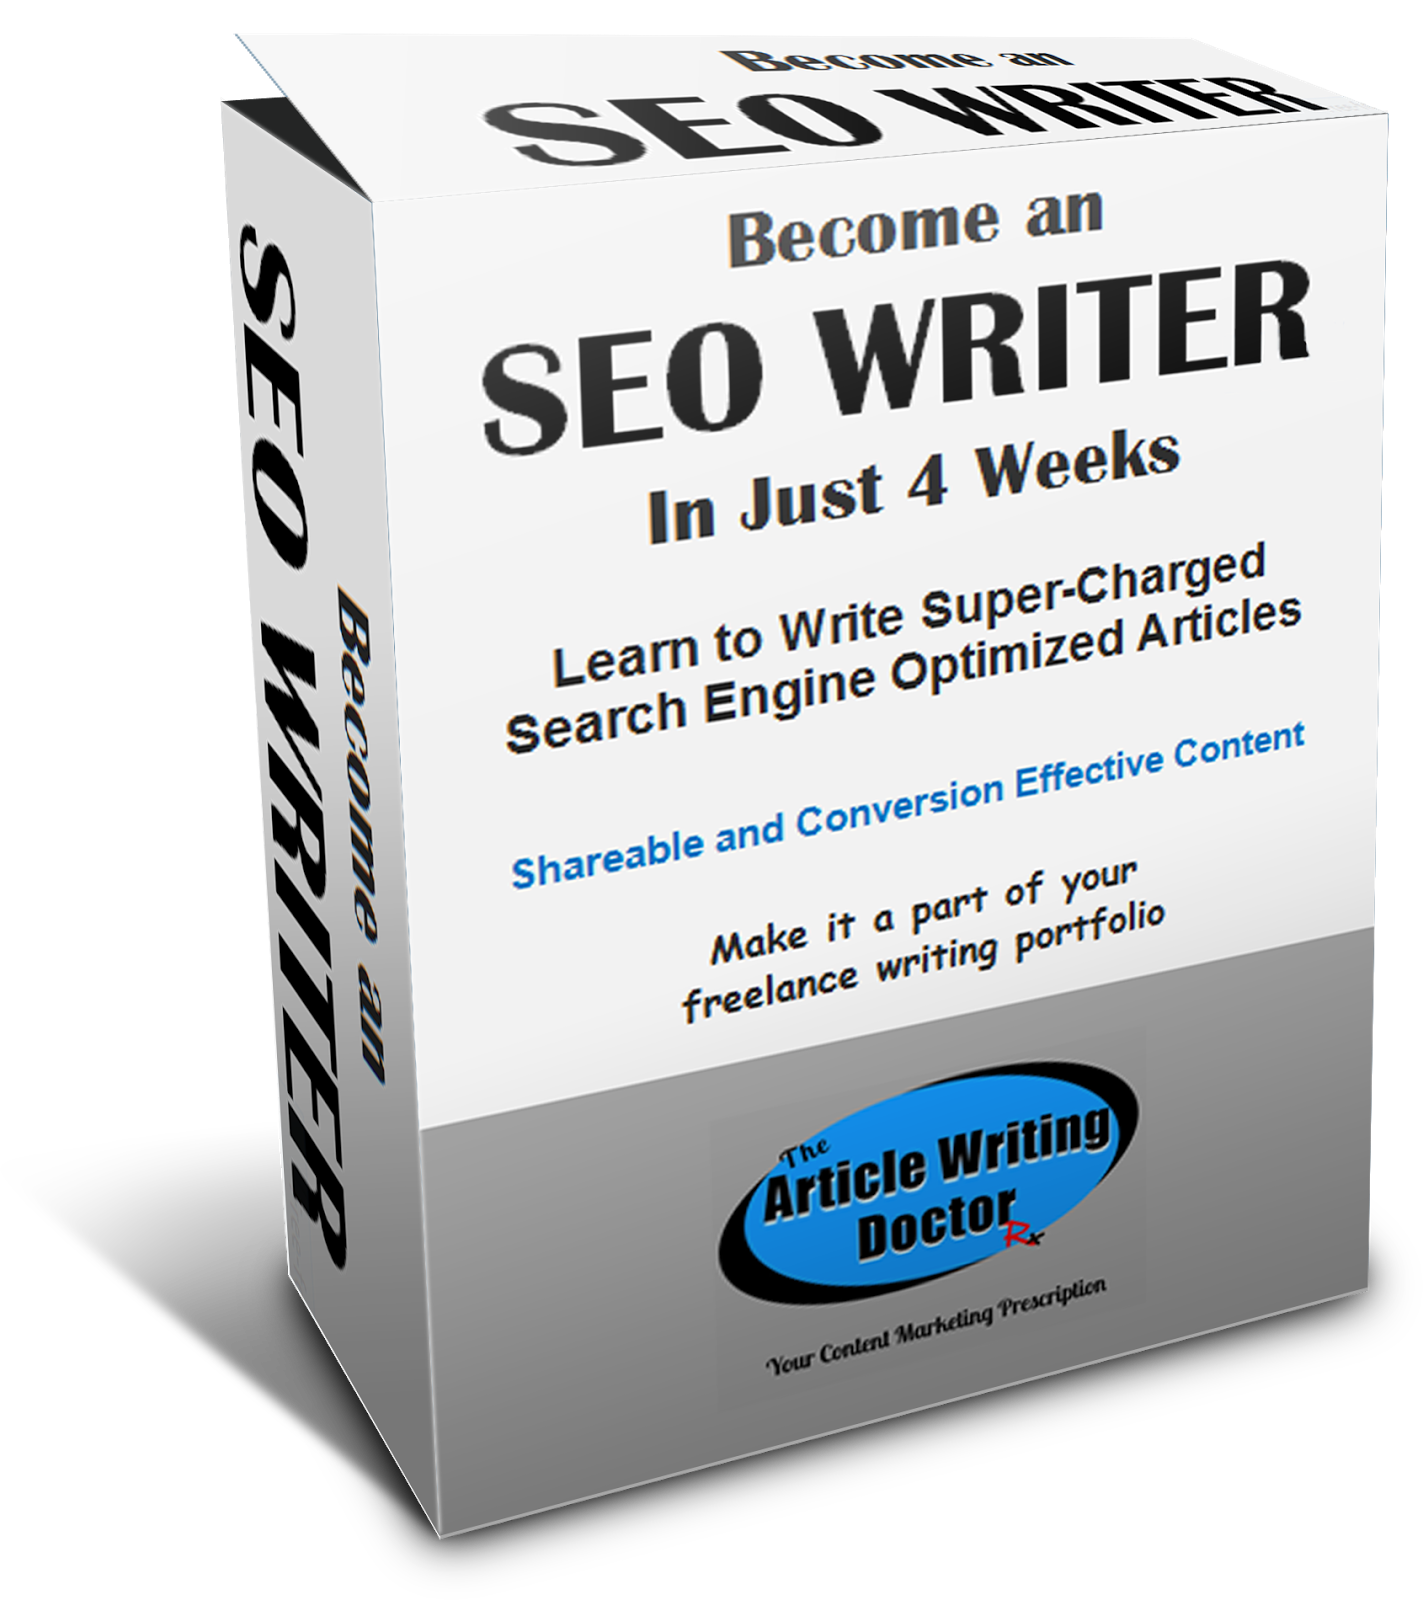 Become an SEO Writer in Just 4 Weeks